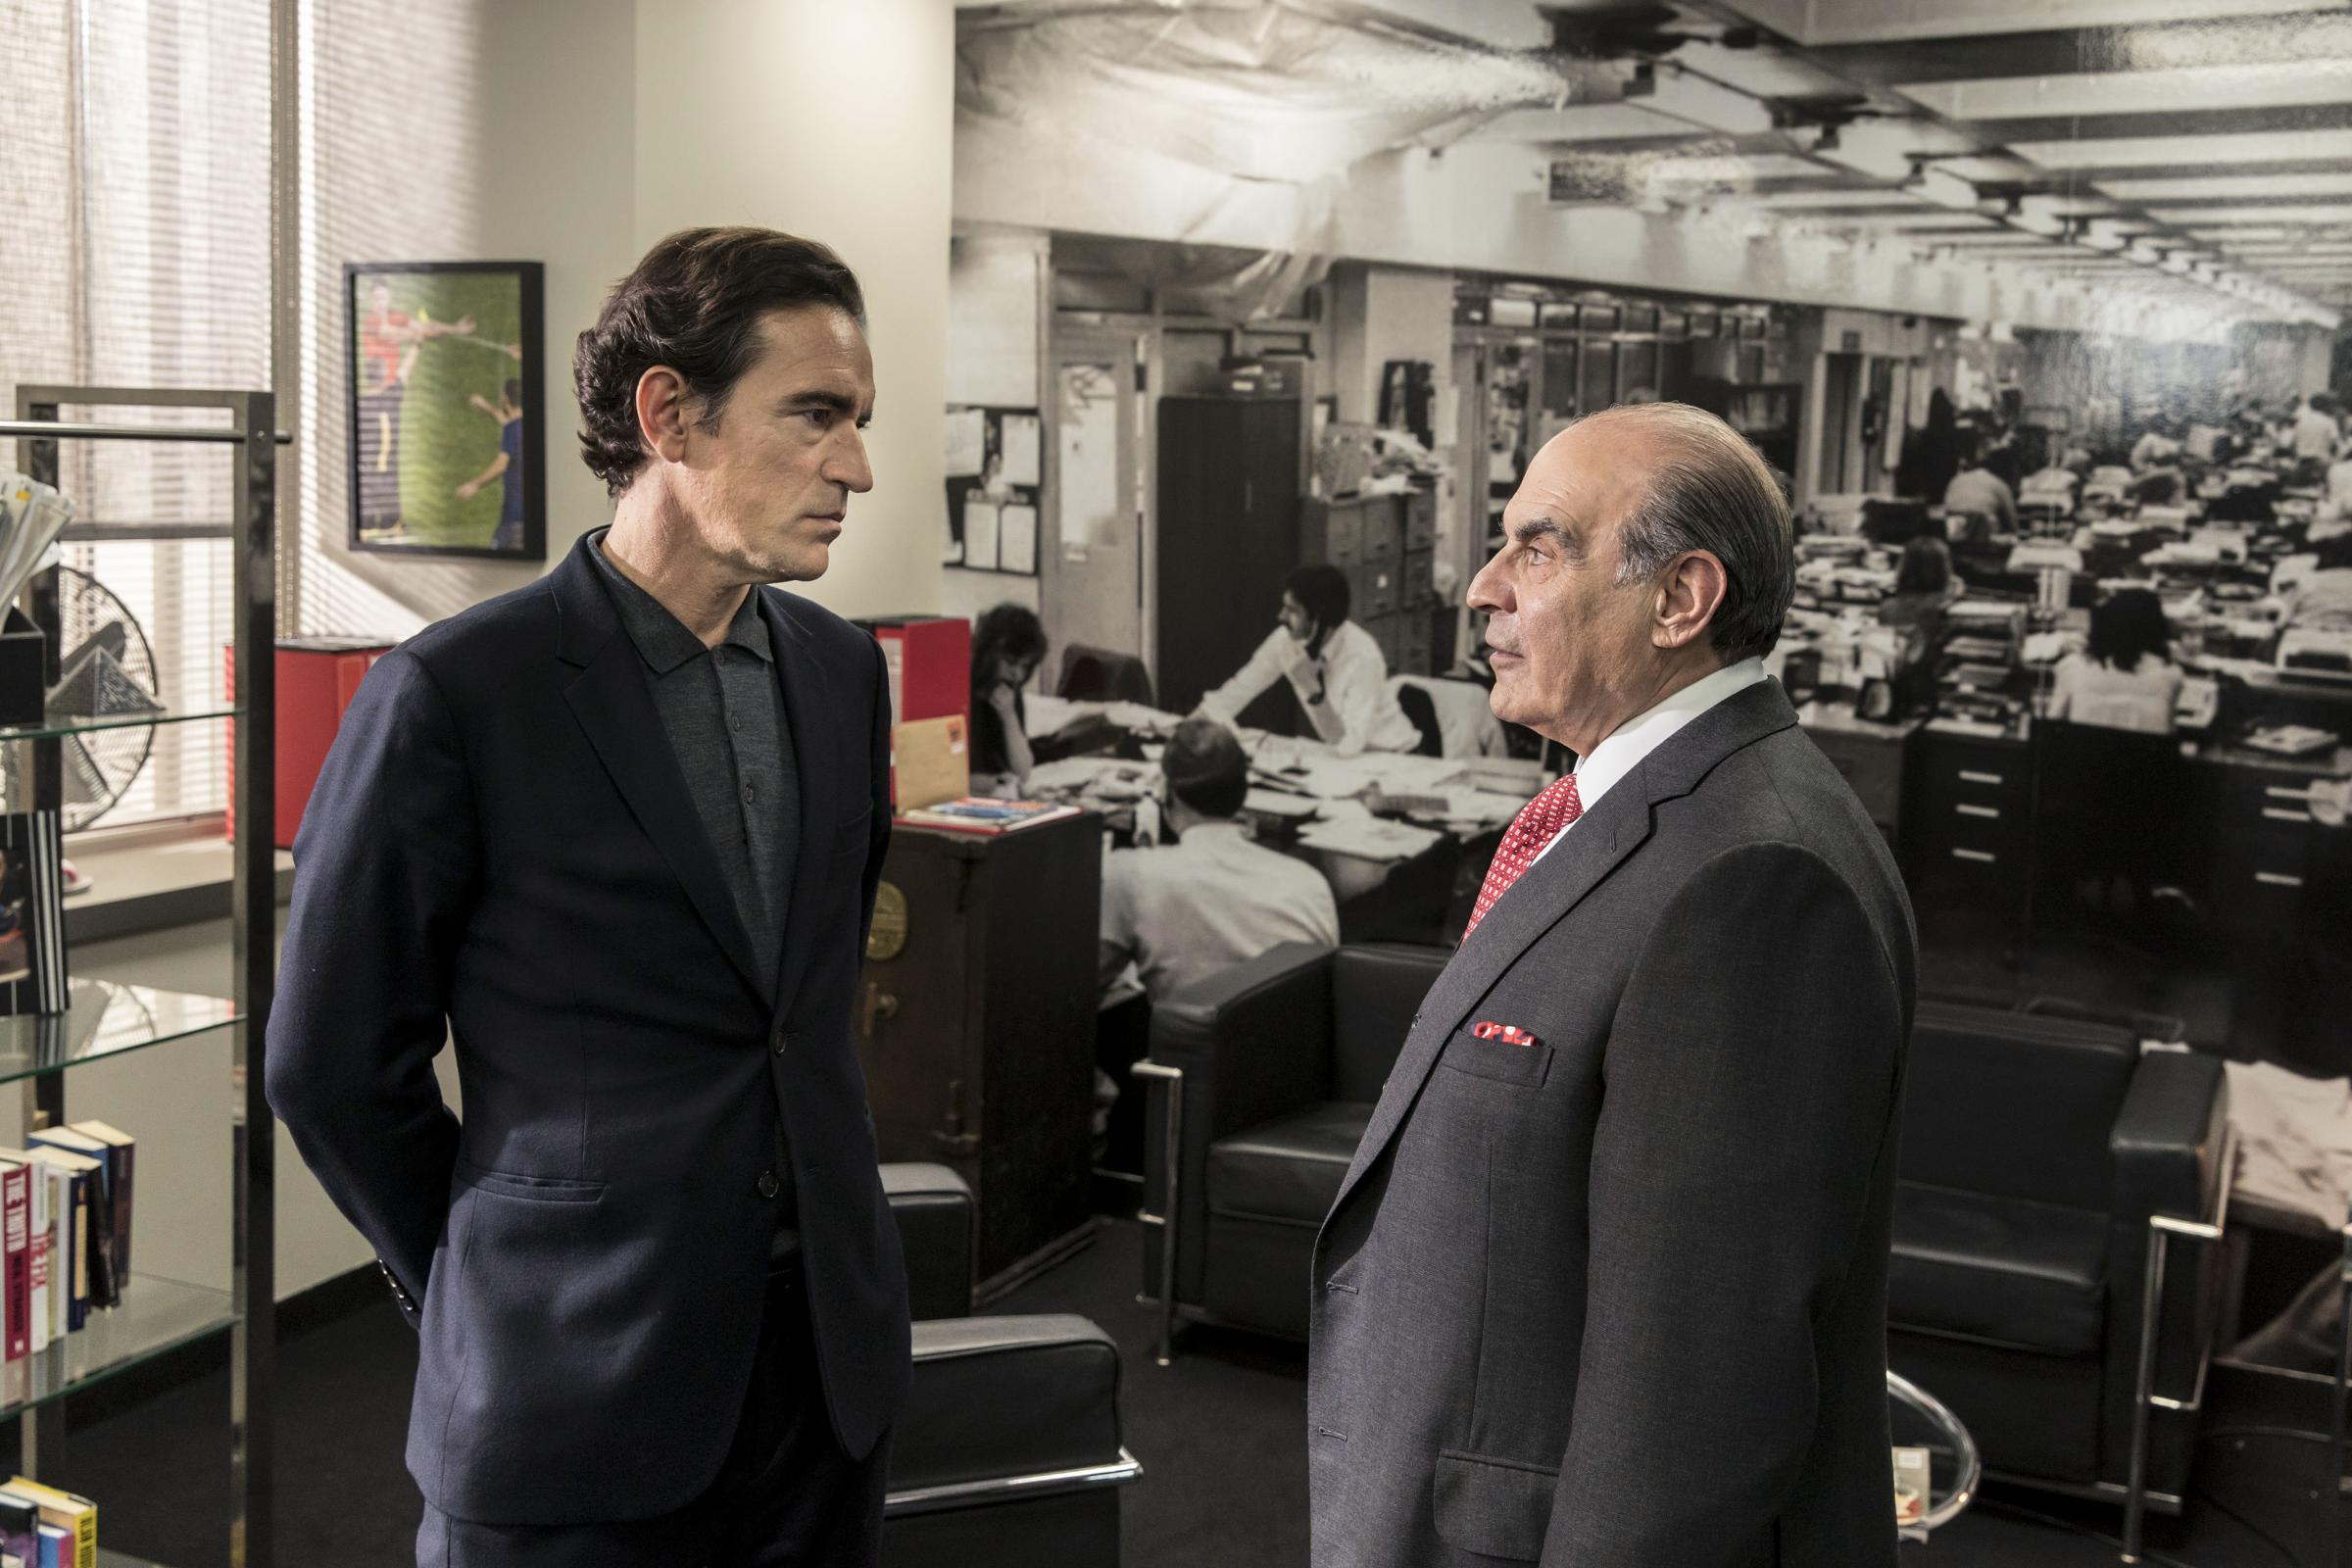 Ben Chaplin and David Suchet in TV drama Press